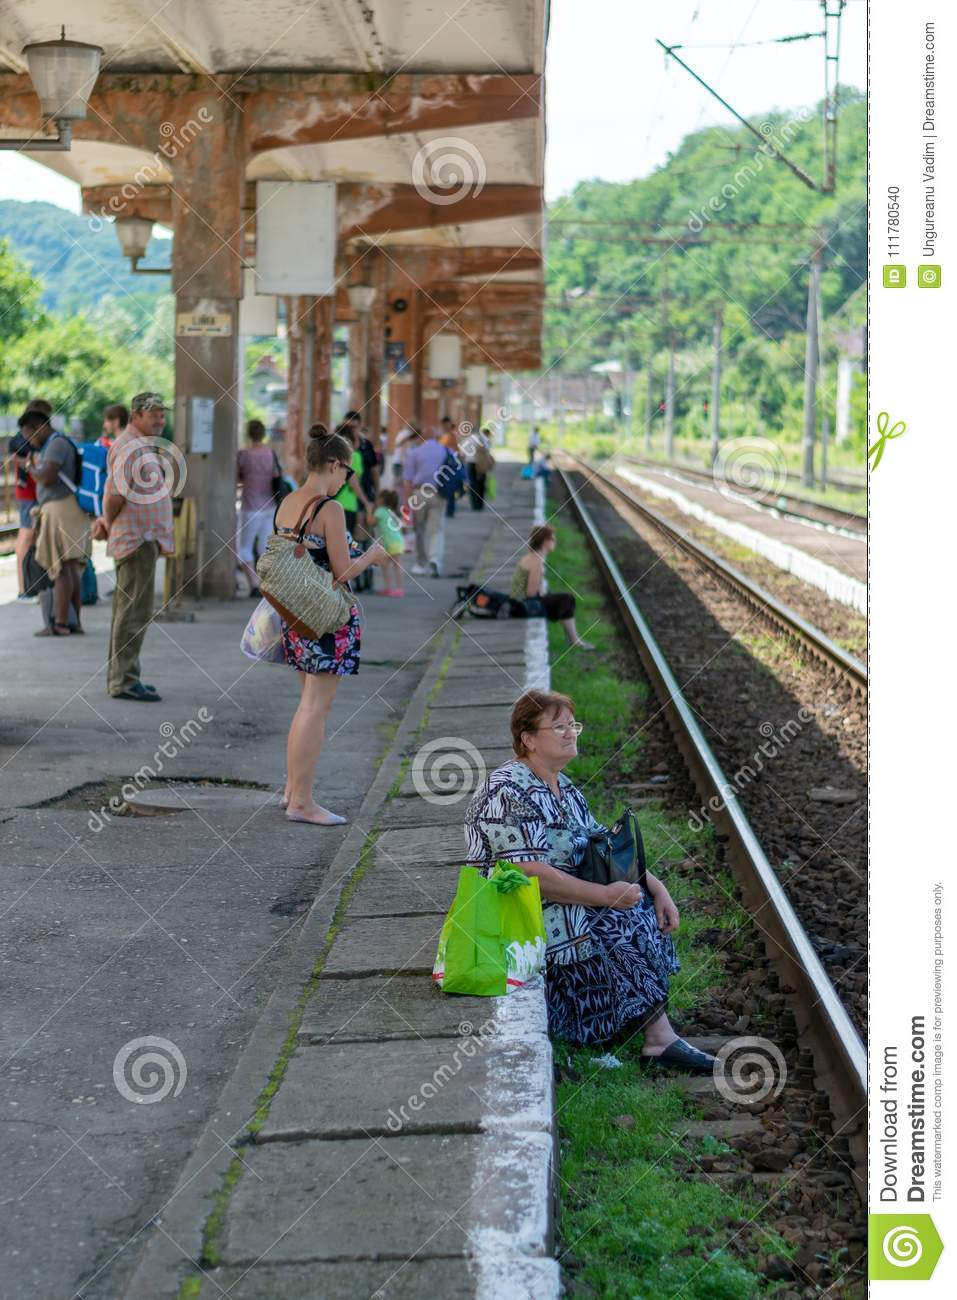 SIGHISOARA, ROMANIA - 1 JULY 2016: People waiting for the train in Sighisoara, Romania.